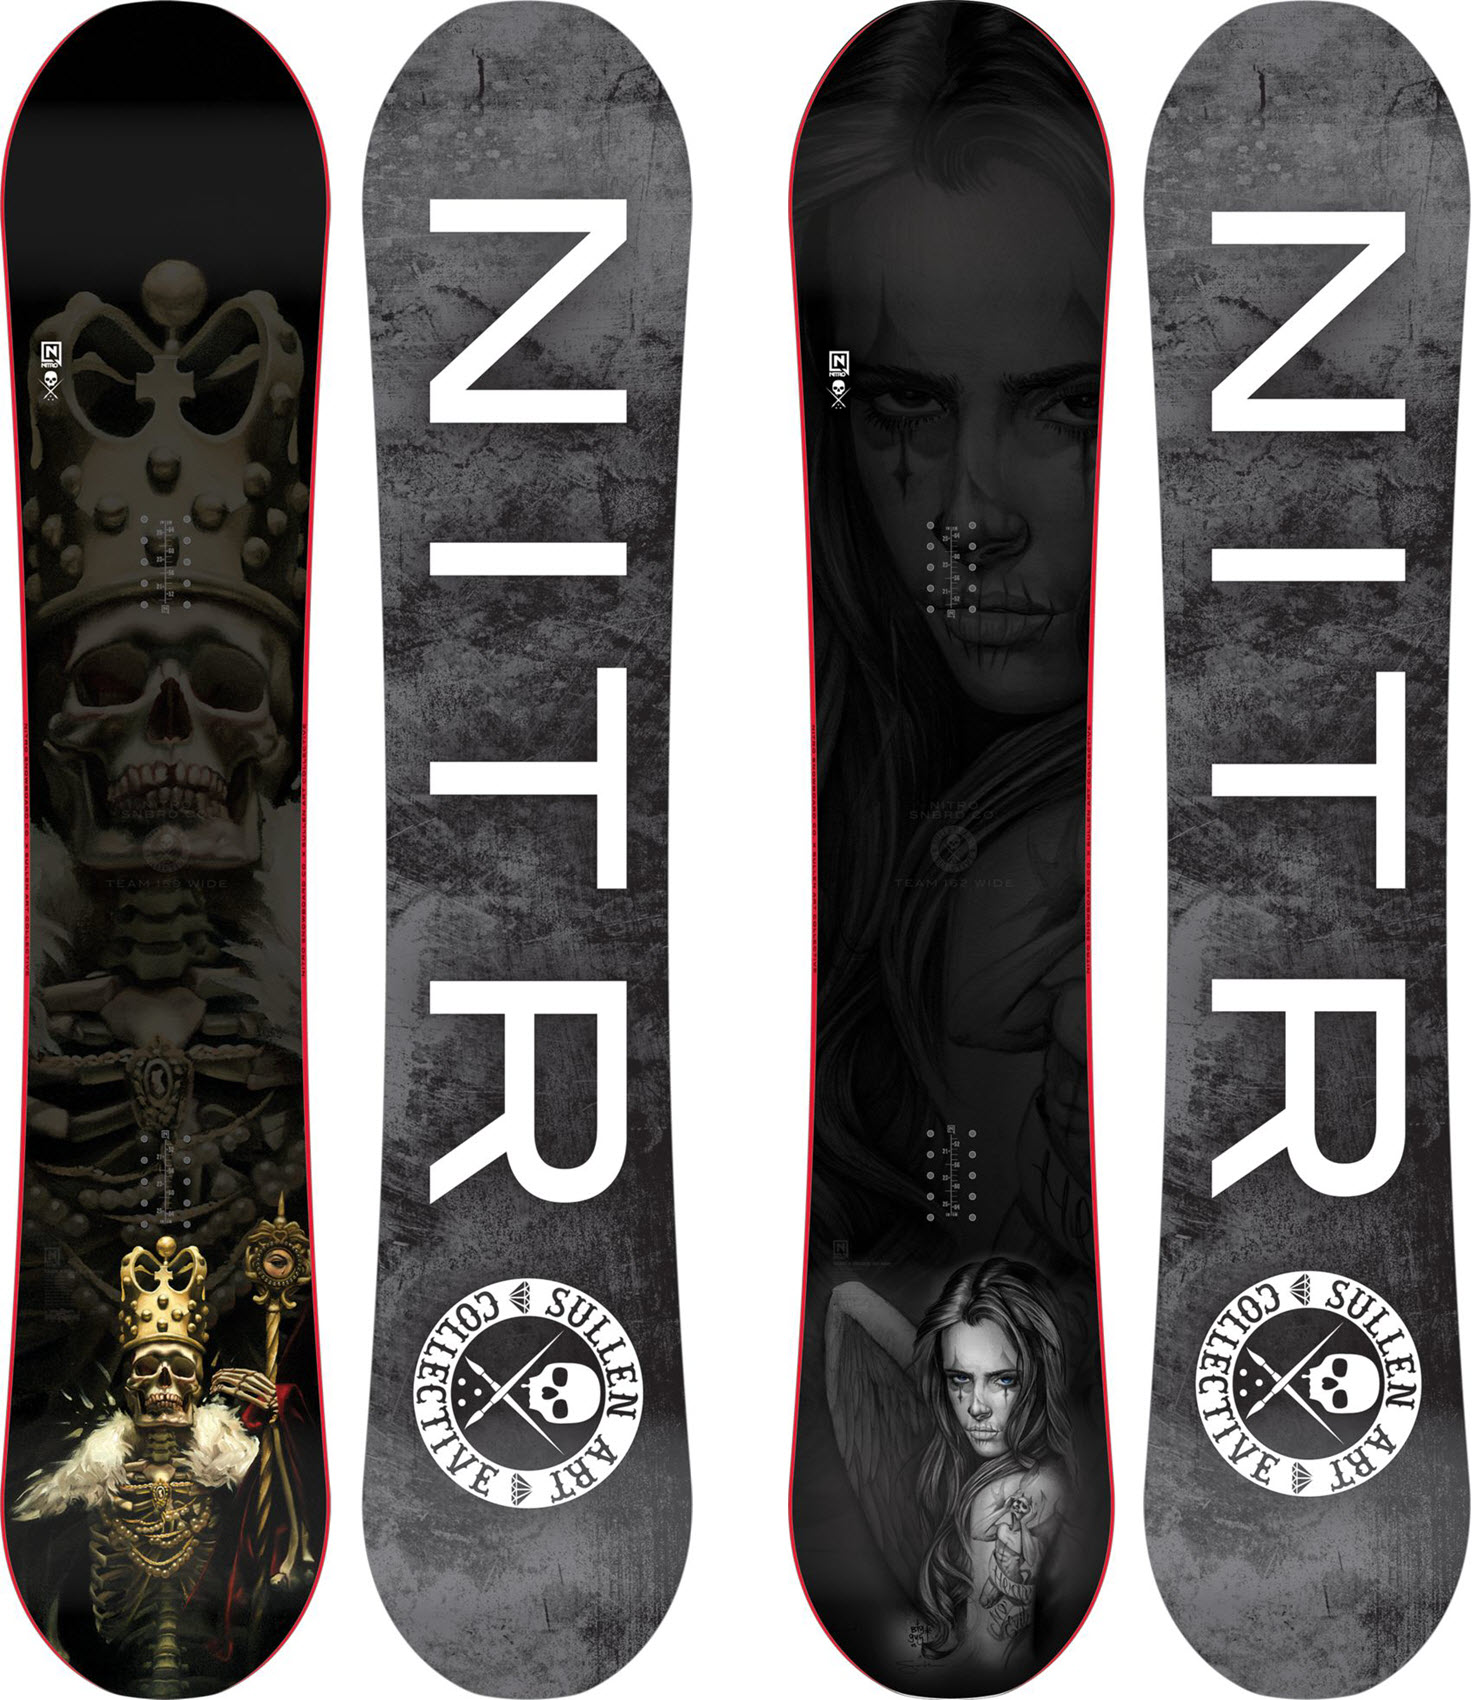 Nitro Team Gullwing x Sullen WIDE 2015 Mens Snowboard